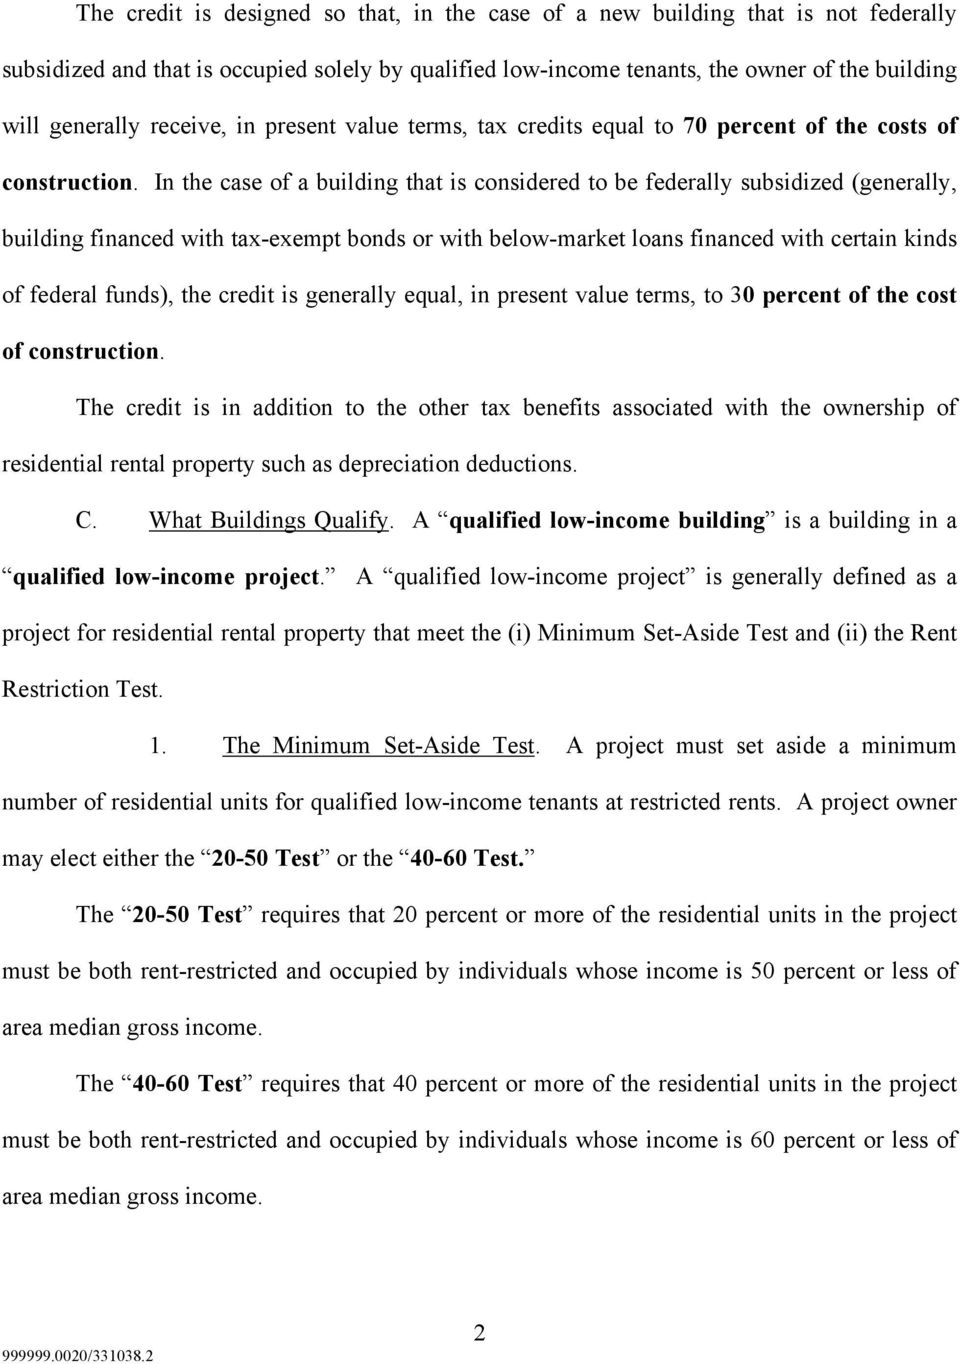 In the case of a building that is considered to be federally subsidized (generally, building financed with tax-exempt bonds or with below-market loans financed with certain kinds of federal funds),